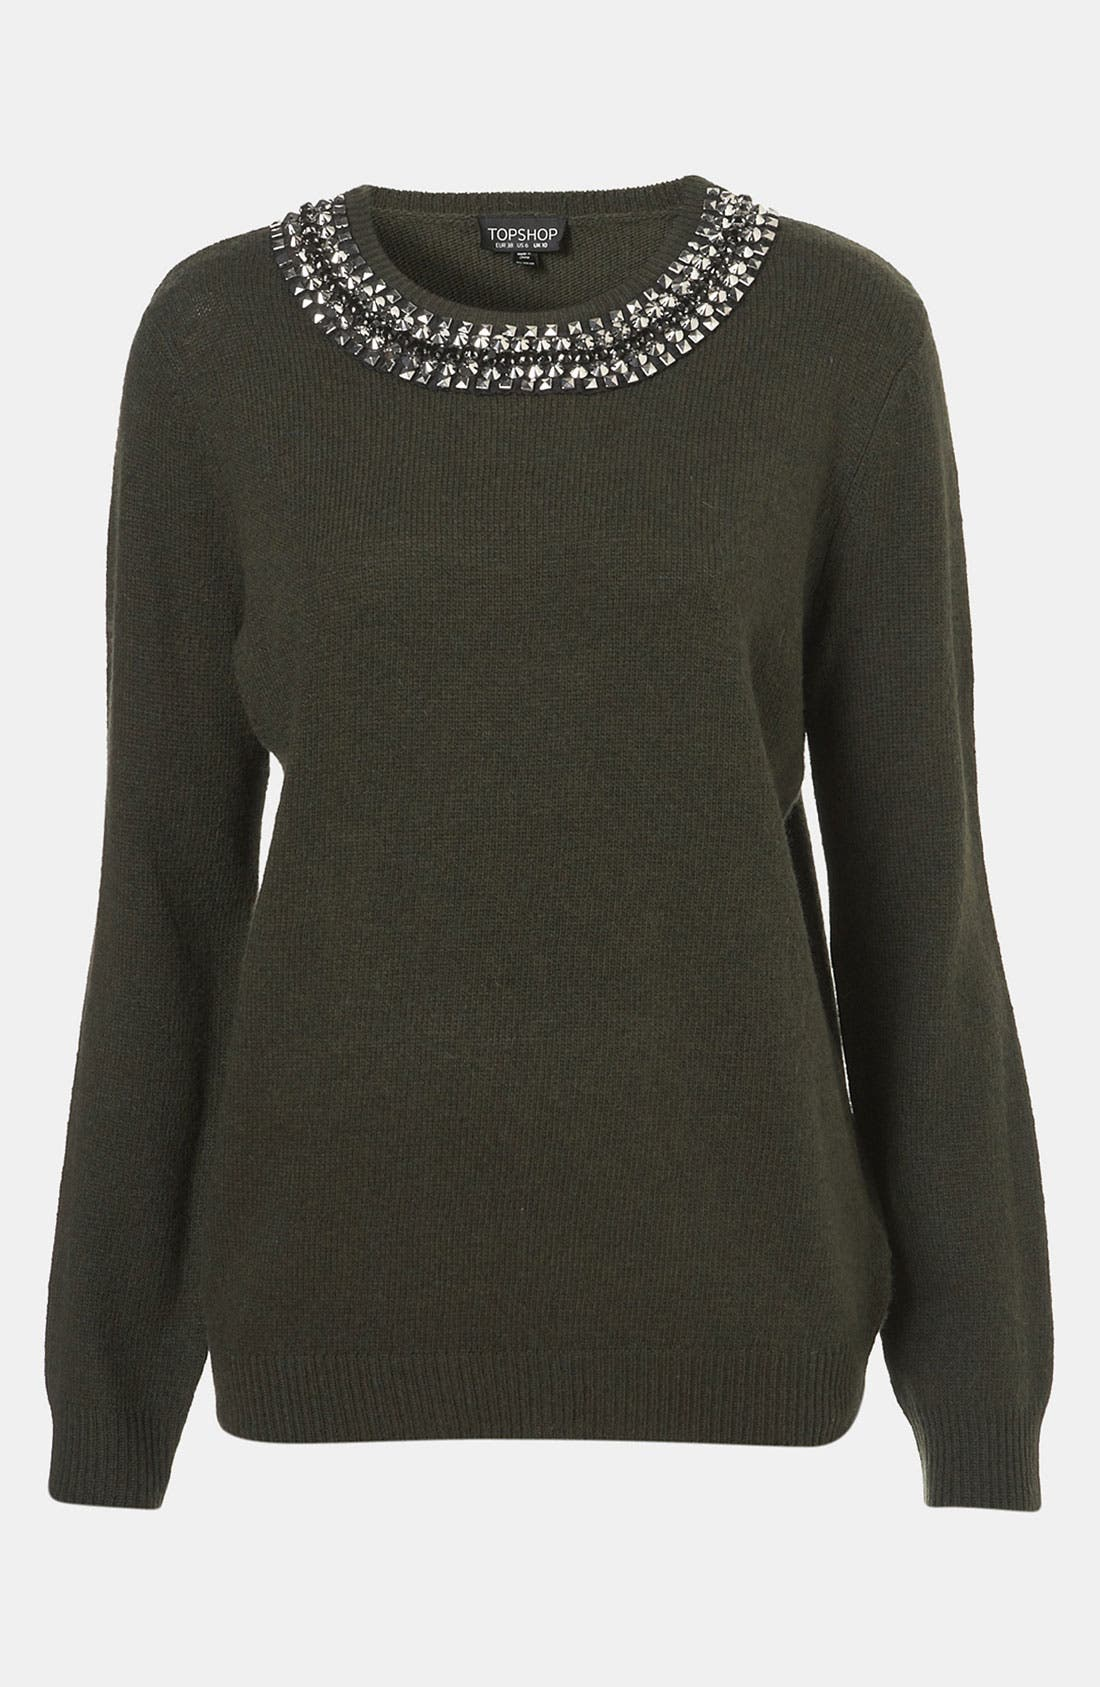 Alternate Image 1 Selected - Topshop Rhinestone Trim Sweater